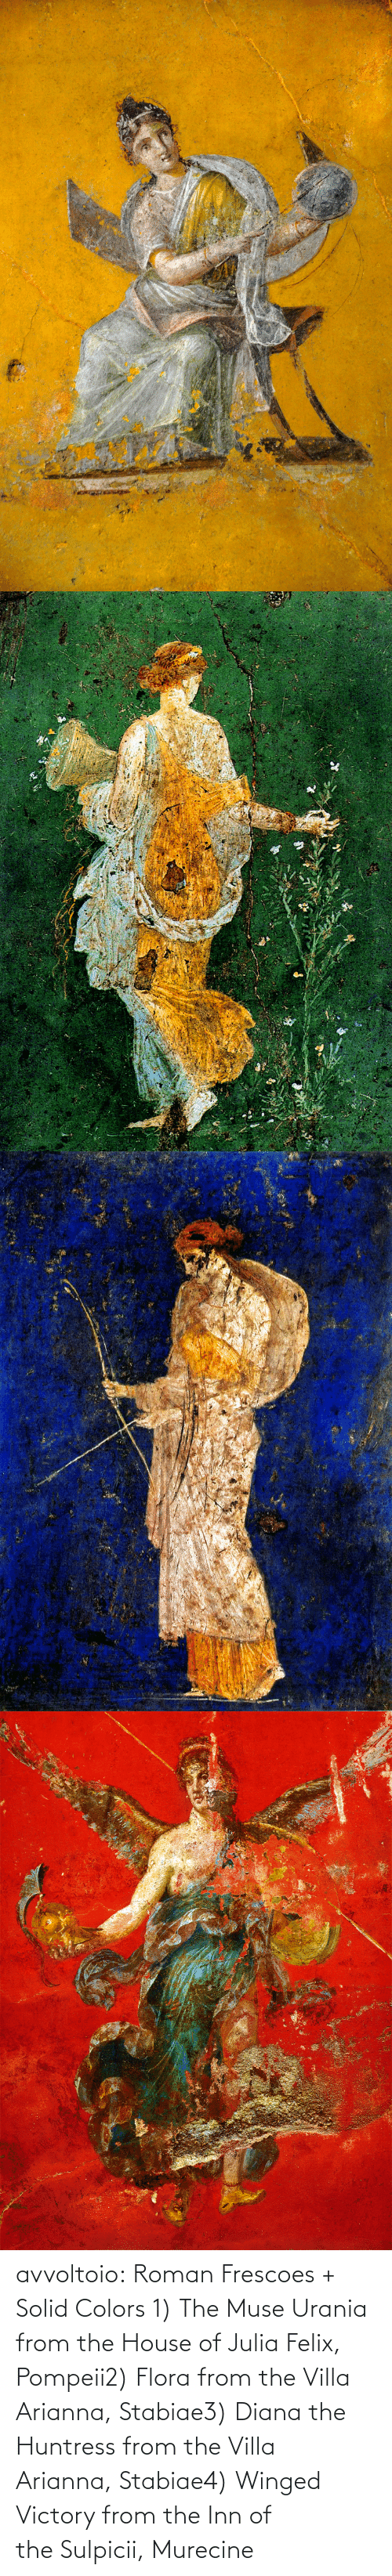 Muse: avvoltoio: Roman Frescoes + Solid Colors 1) The Muse Urania from the House of Julia Felix, Pompeii2) Flora from the Villa Arianna, Stabiae3) Diana the Huntress from the Villa Arianna, Stabiae4) Winged Victory from the Inn of the Sulpicii, Murecine